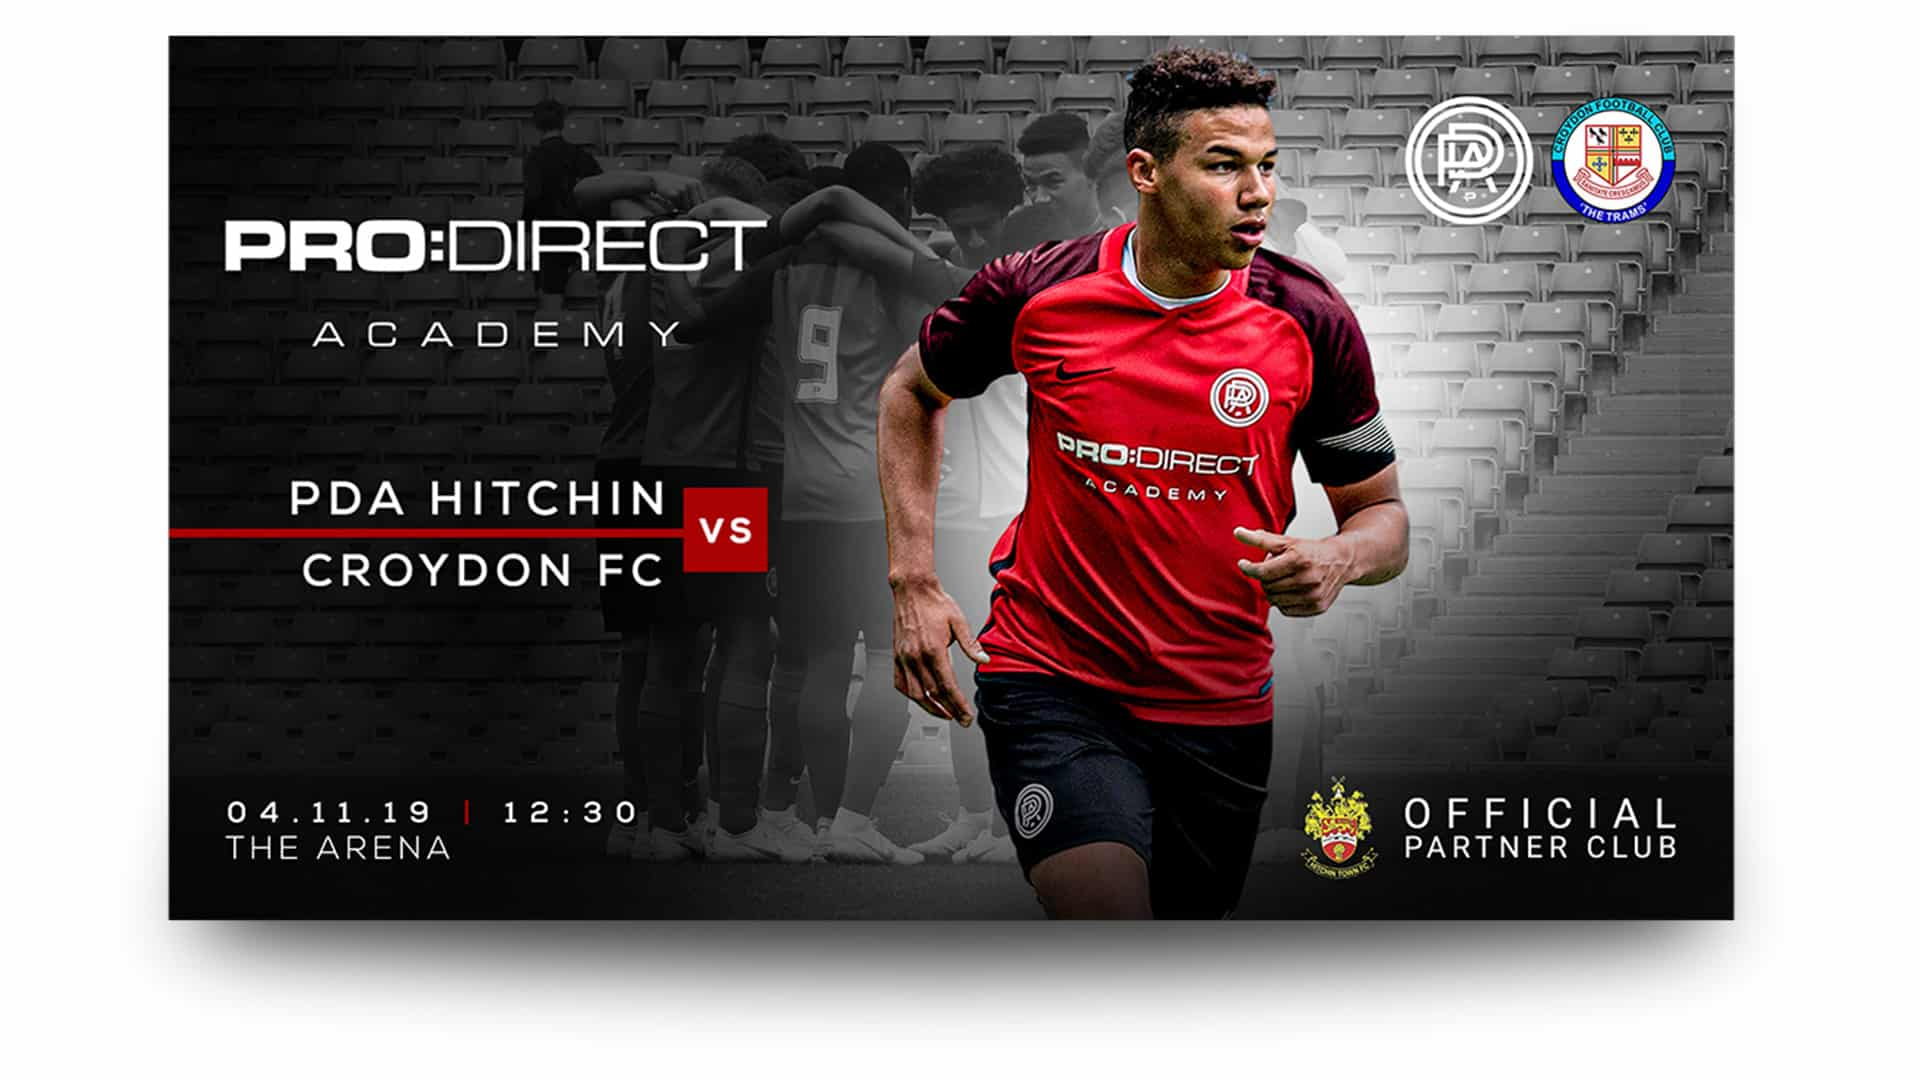 pro-direct-academy-matchday-graphics-set